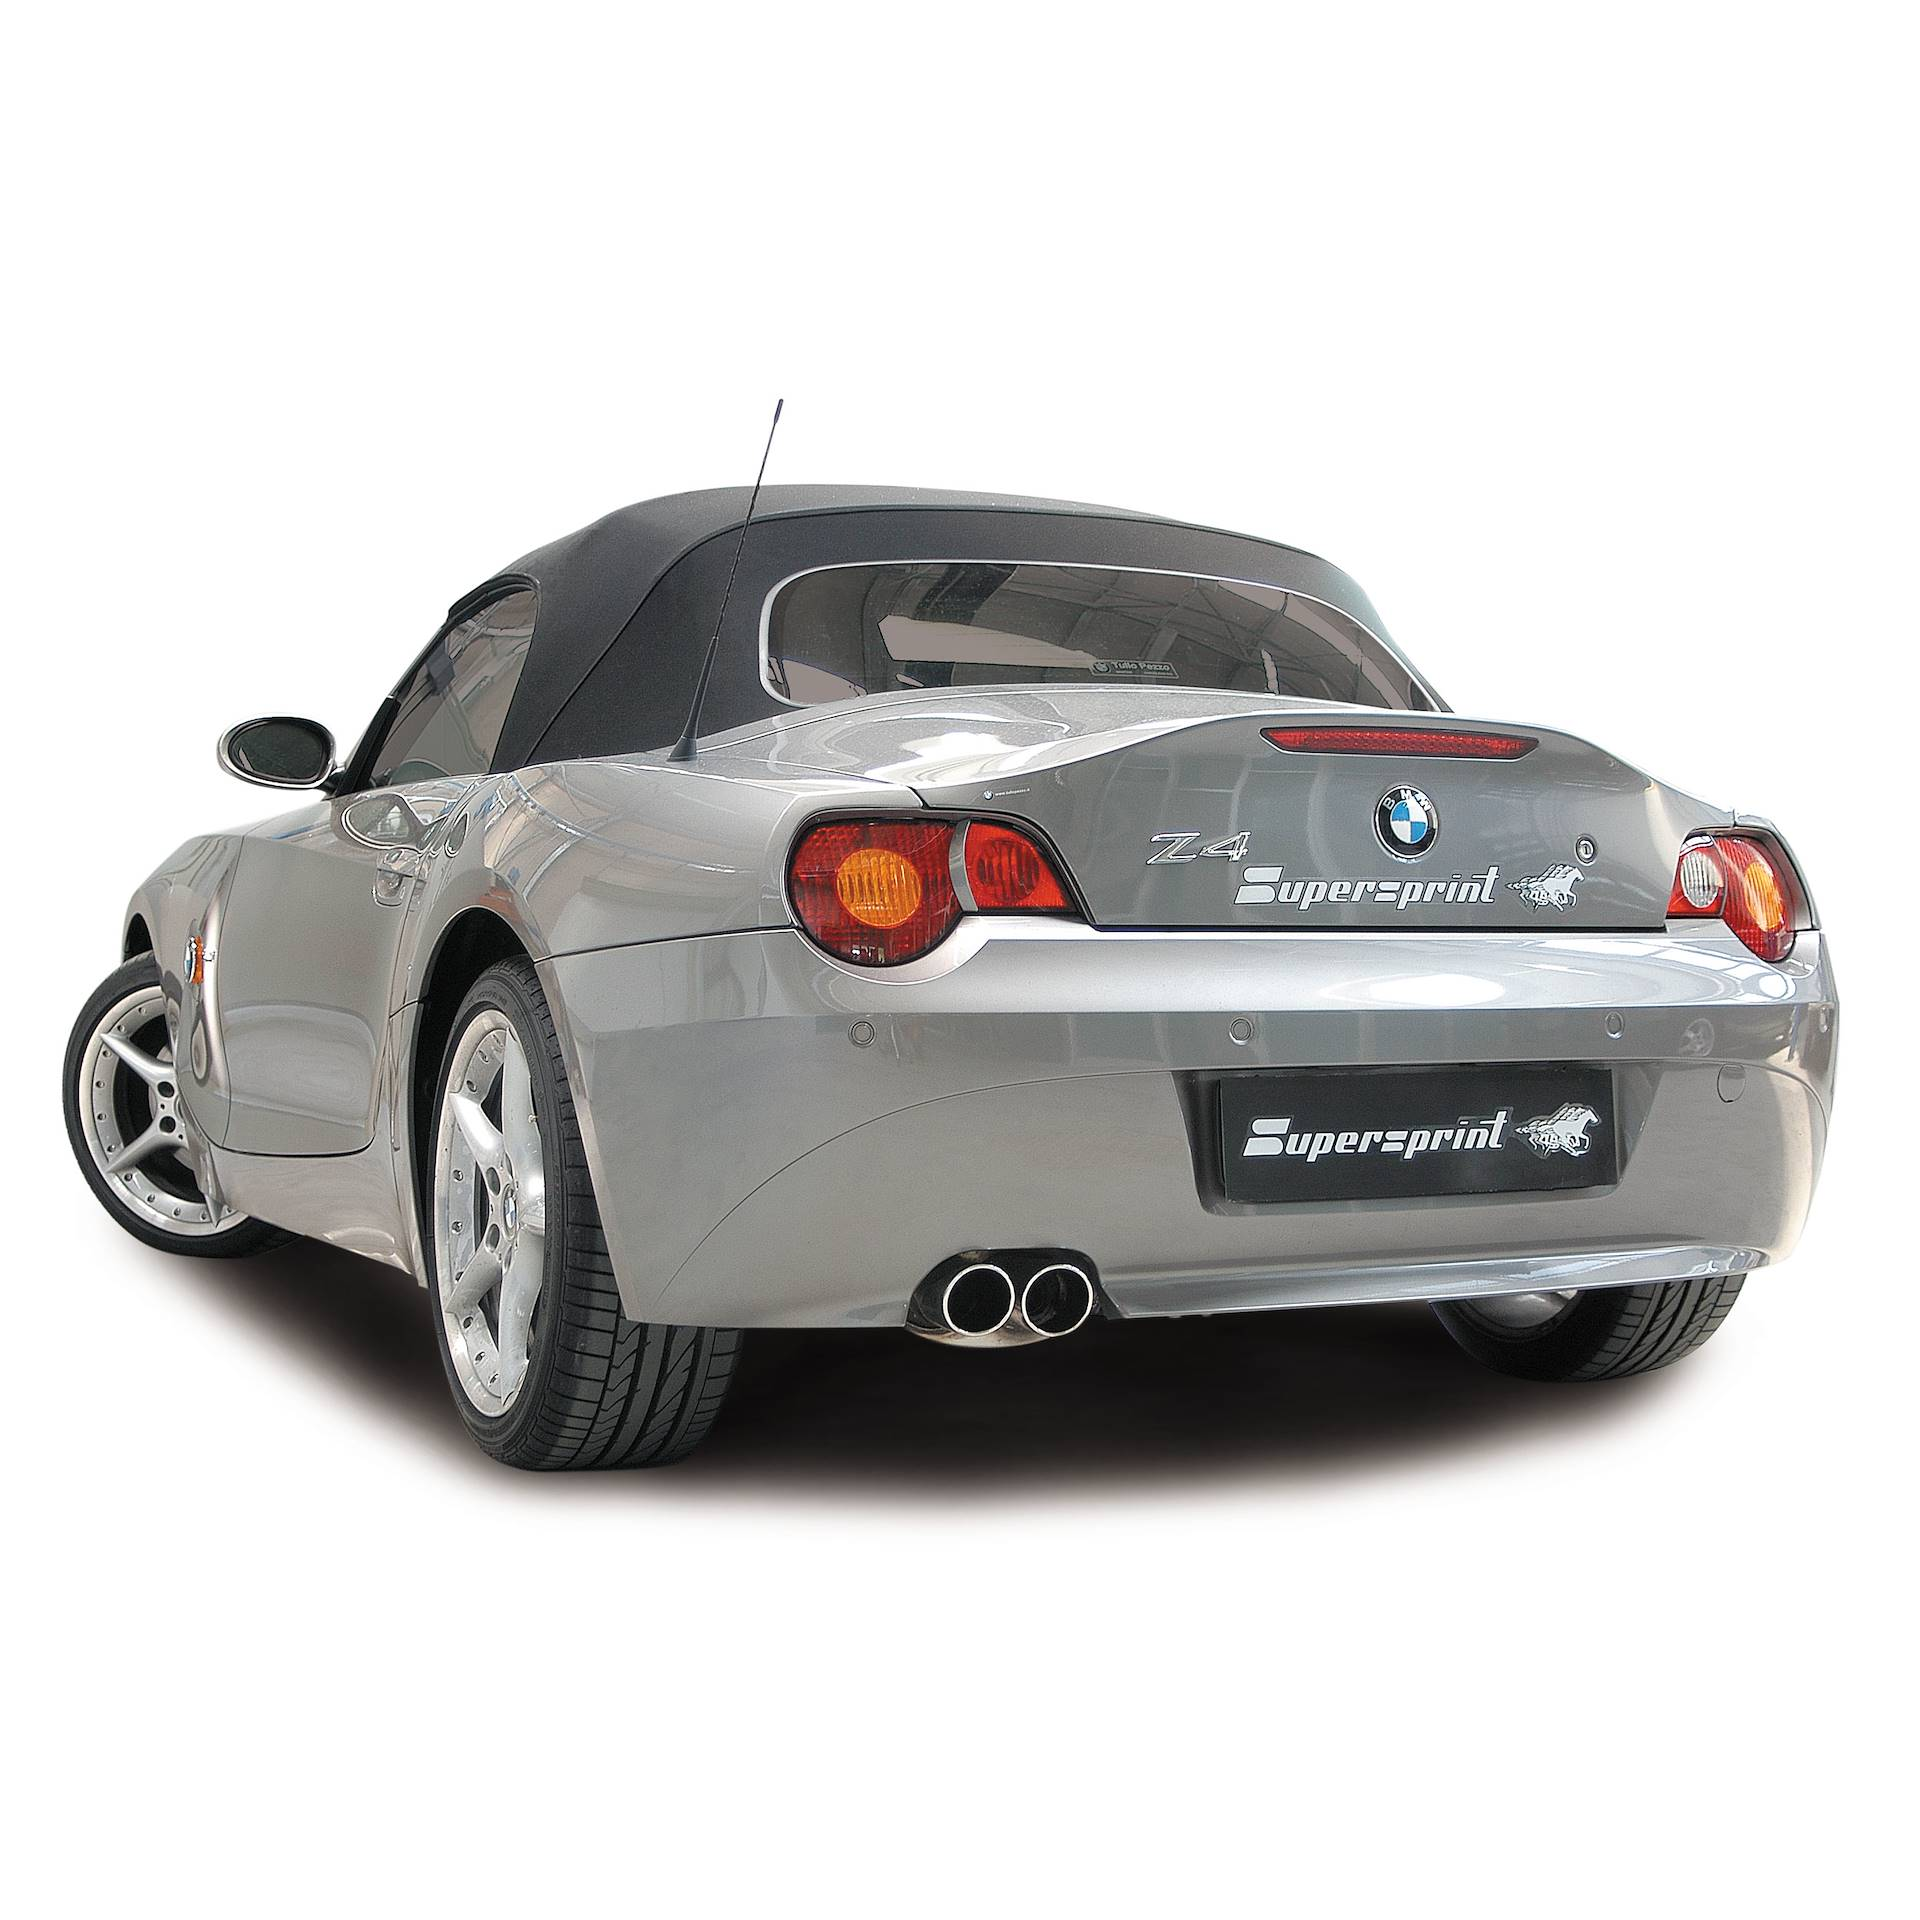 BMW - BMW Z4 Roadster LHD 2.2i (170 PS) ' 04 -> ' 05